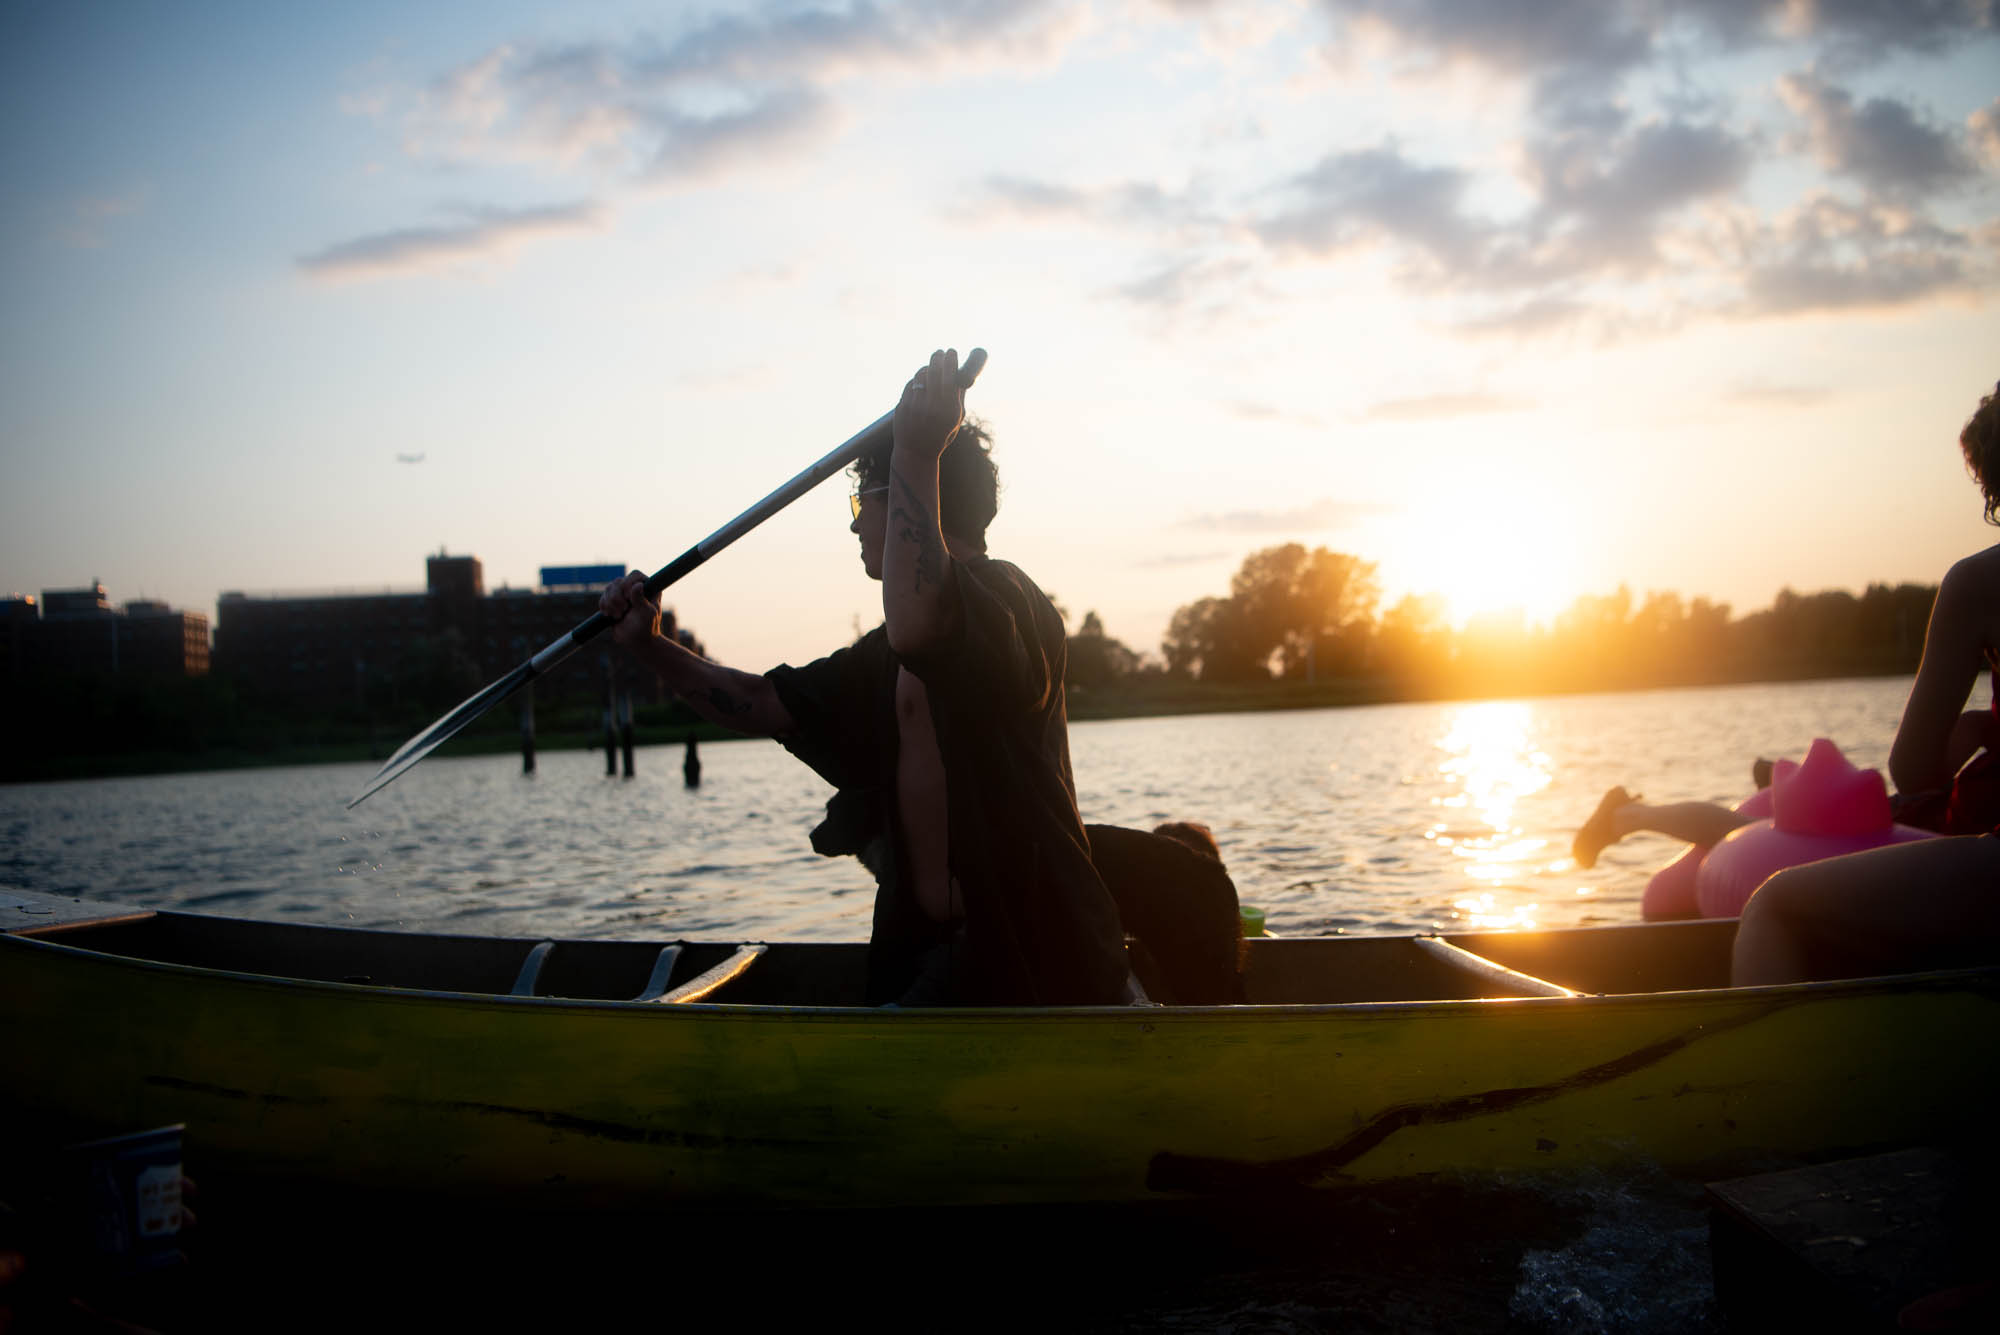 Participants of The Battle for Mau Mau Island in their canoe at sunset on Saturday, July 27, 2019.